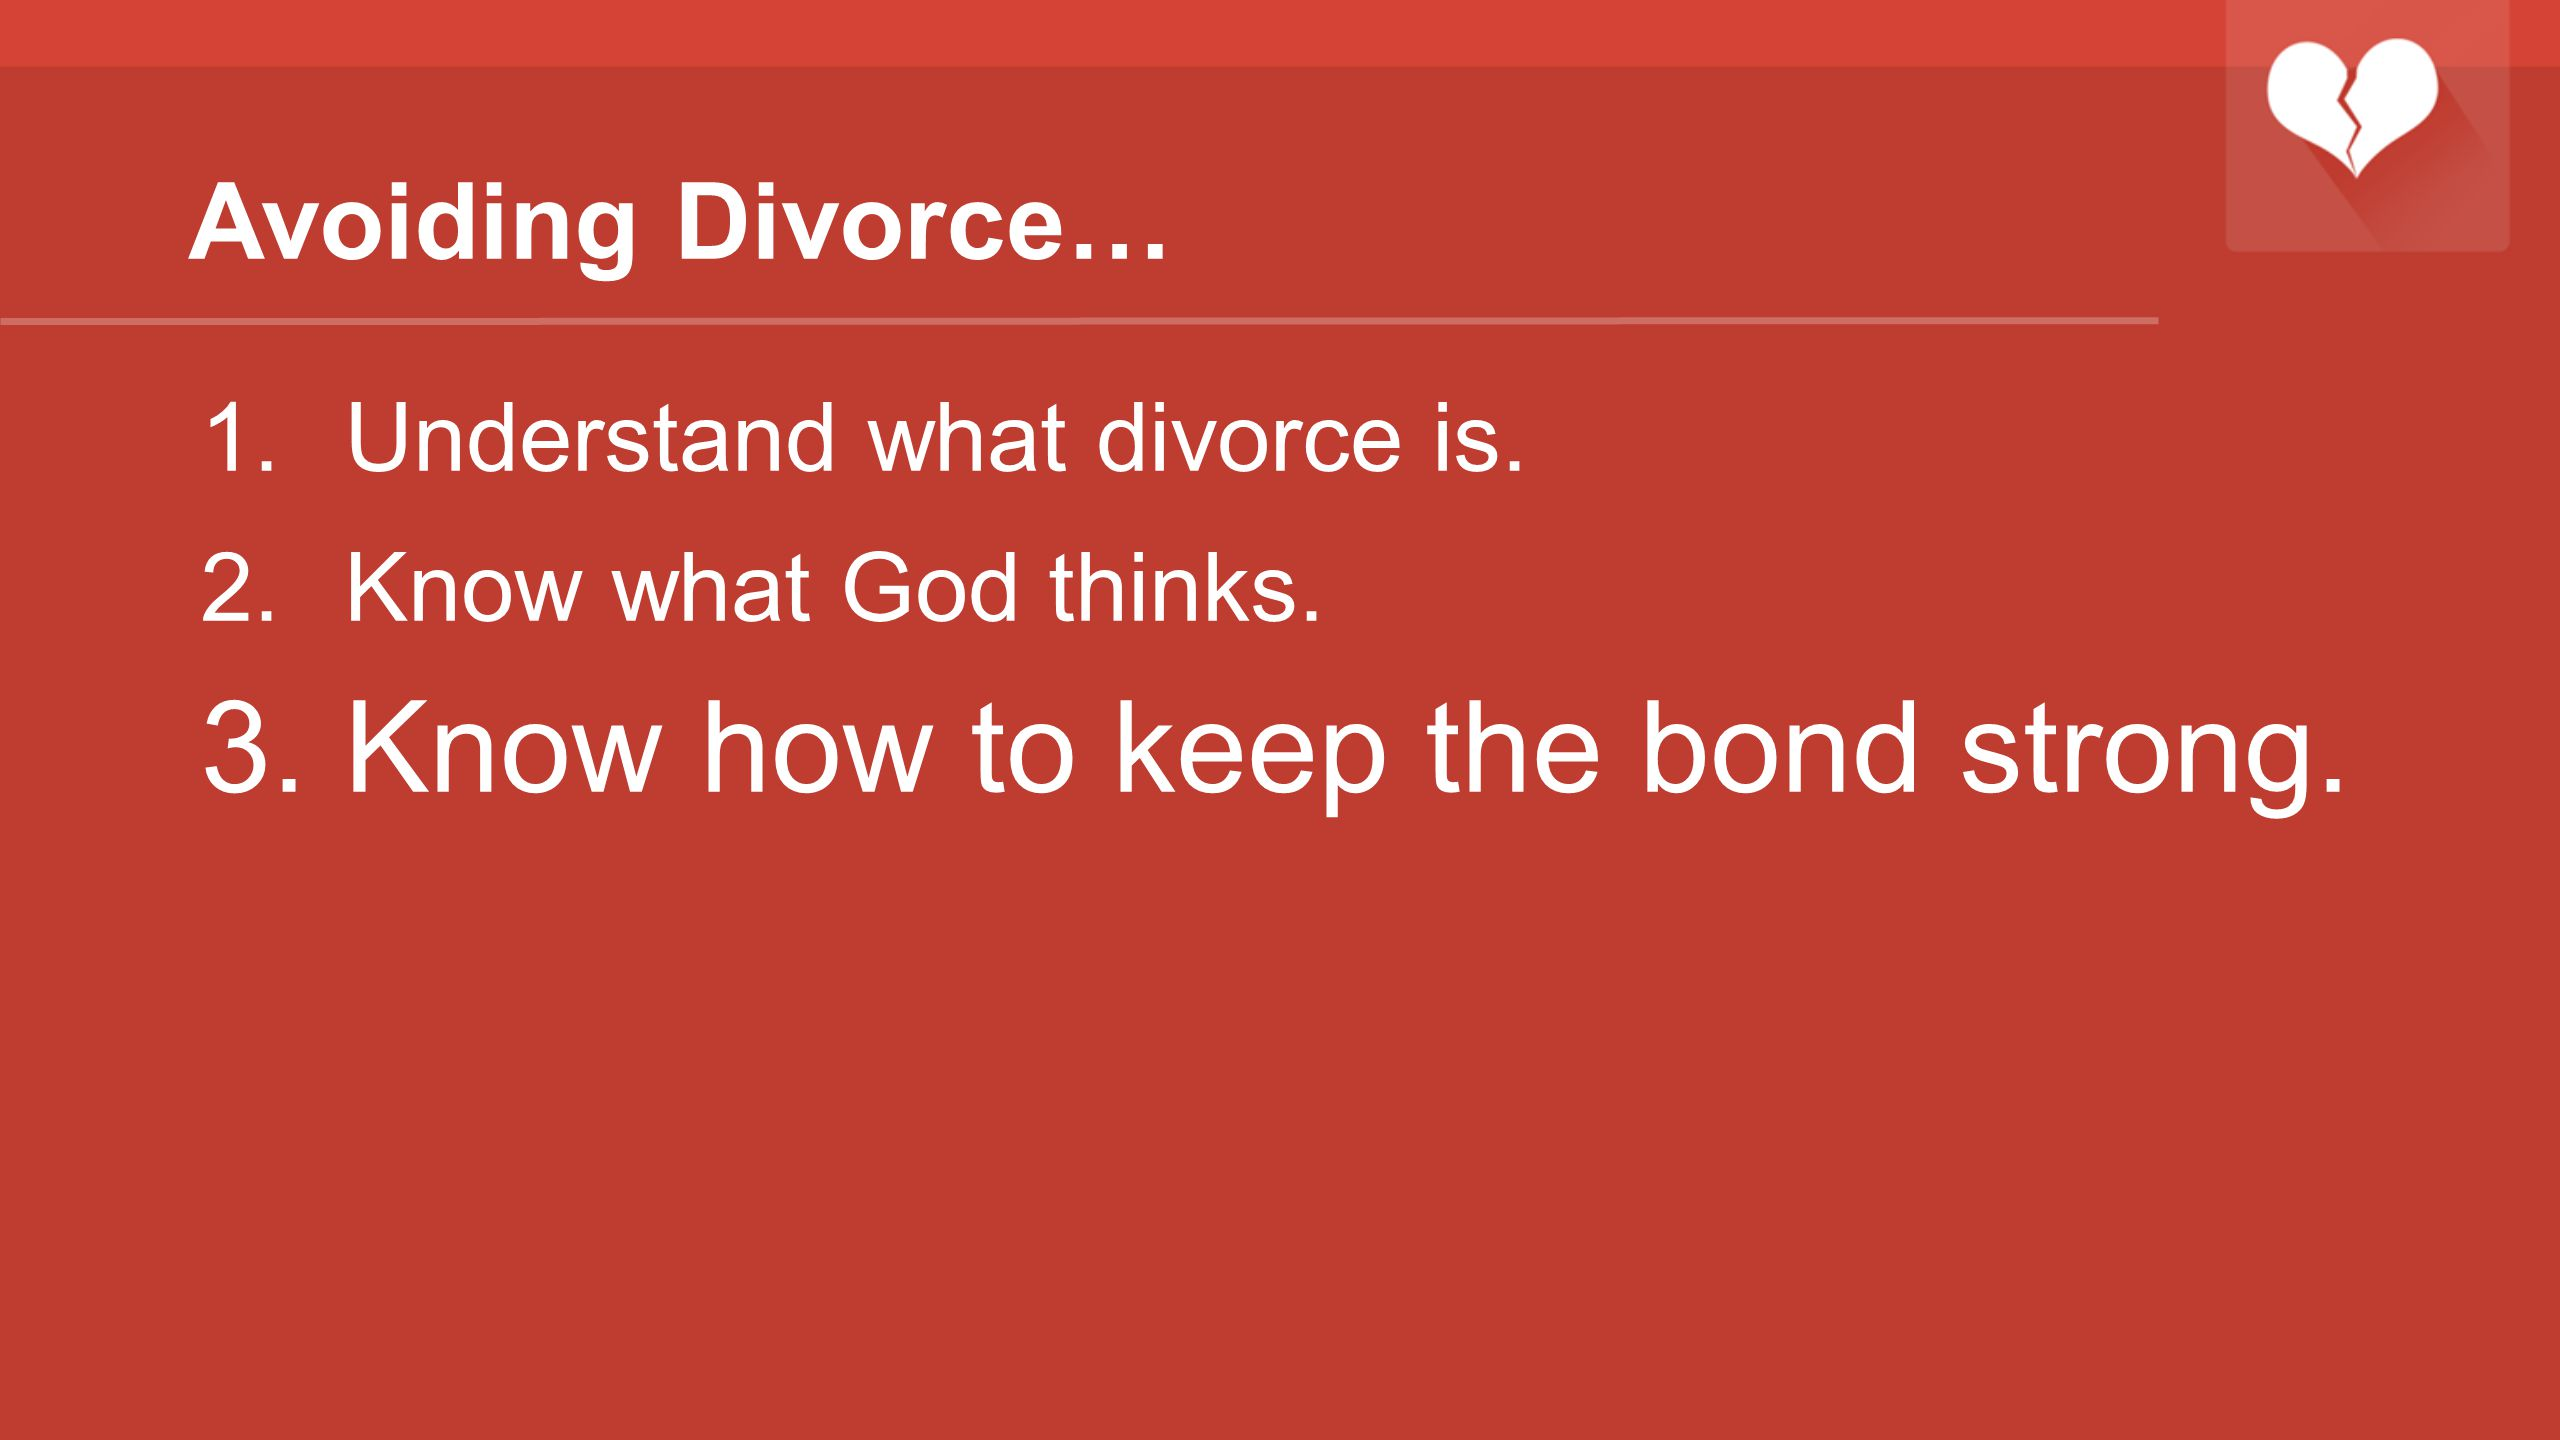 Know how to keep the bond strong.